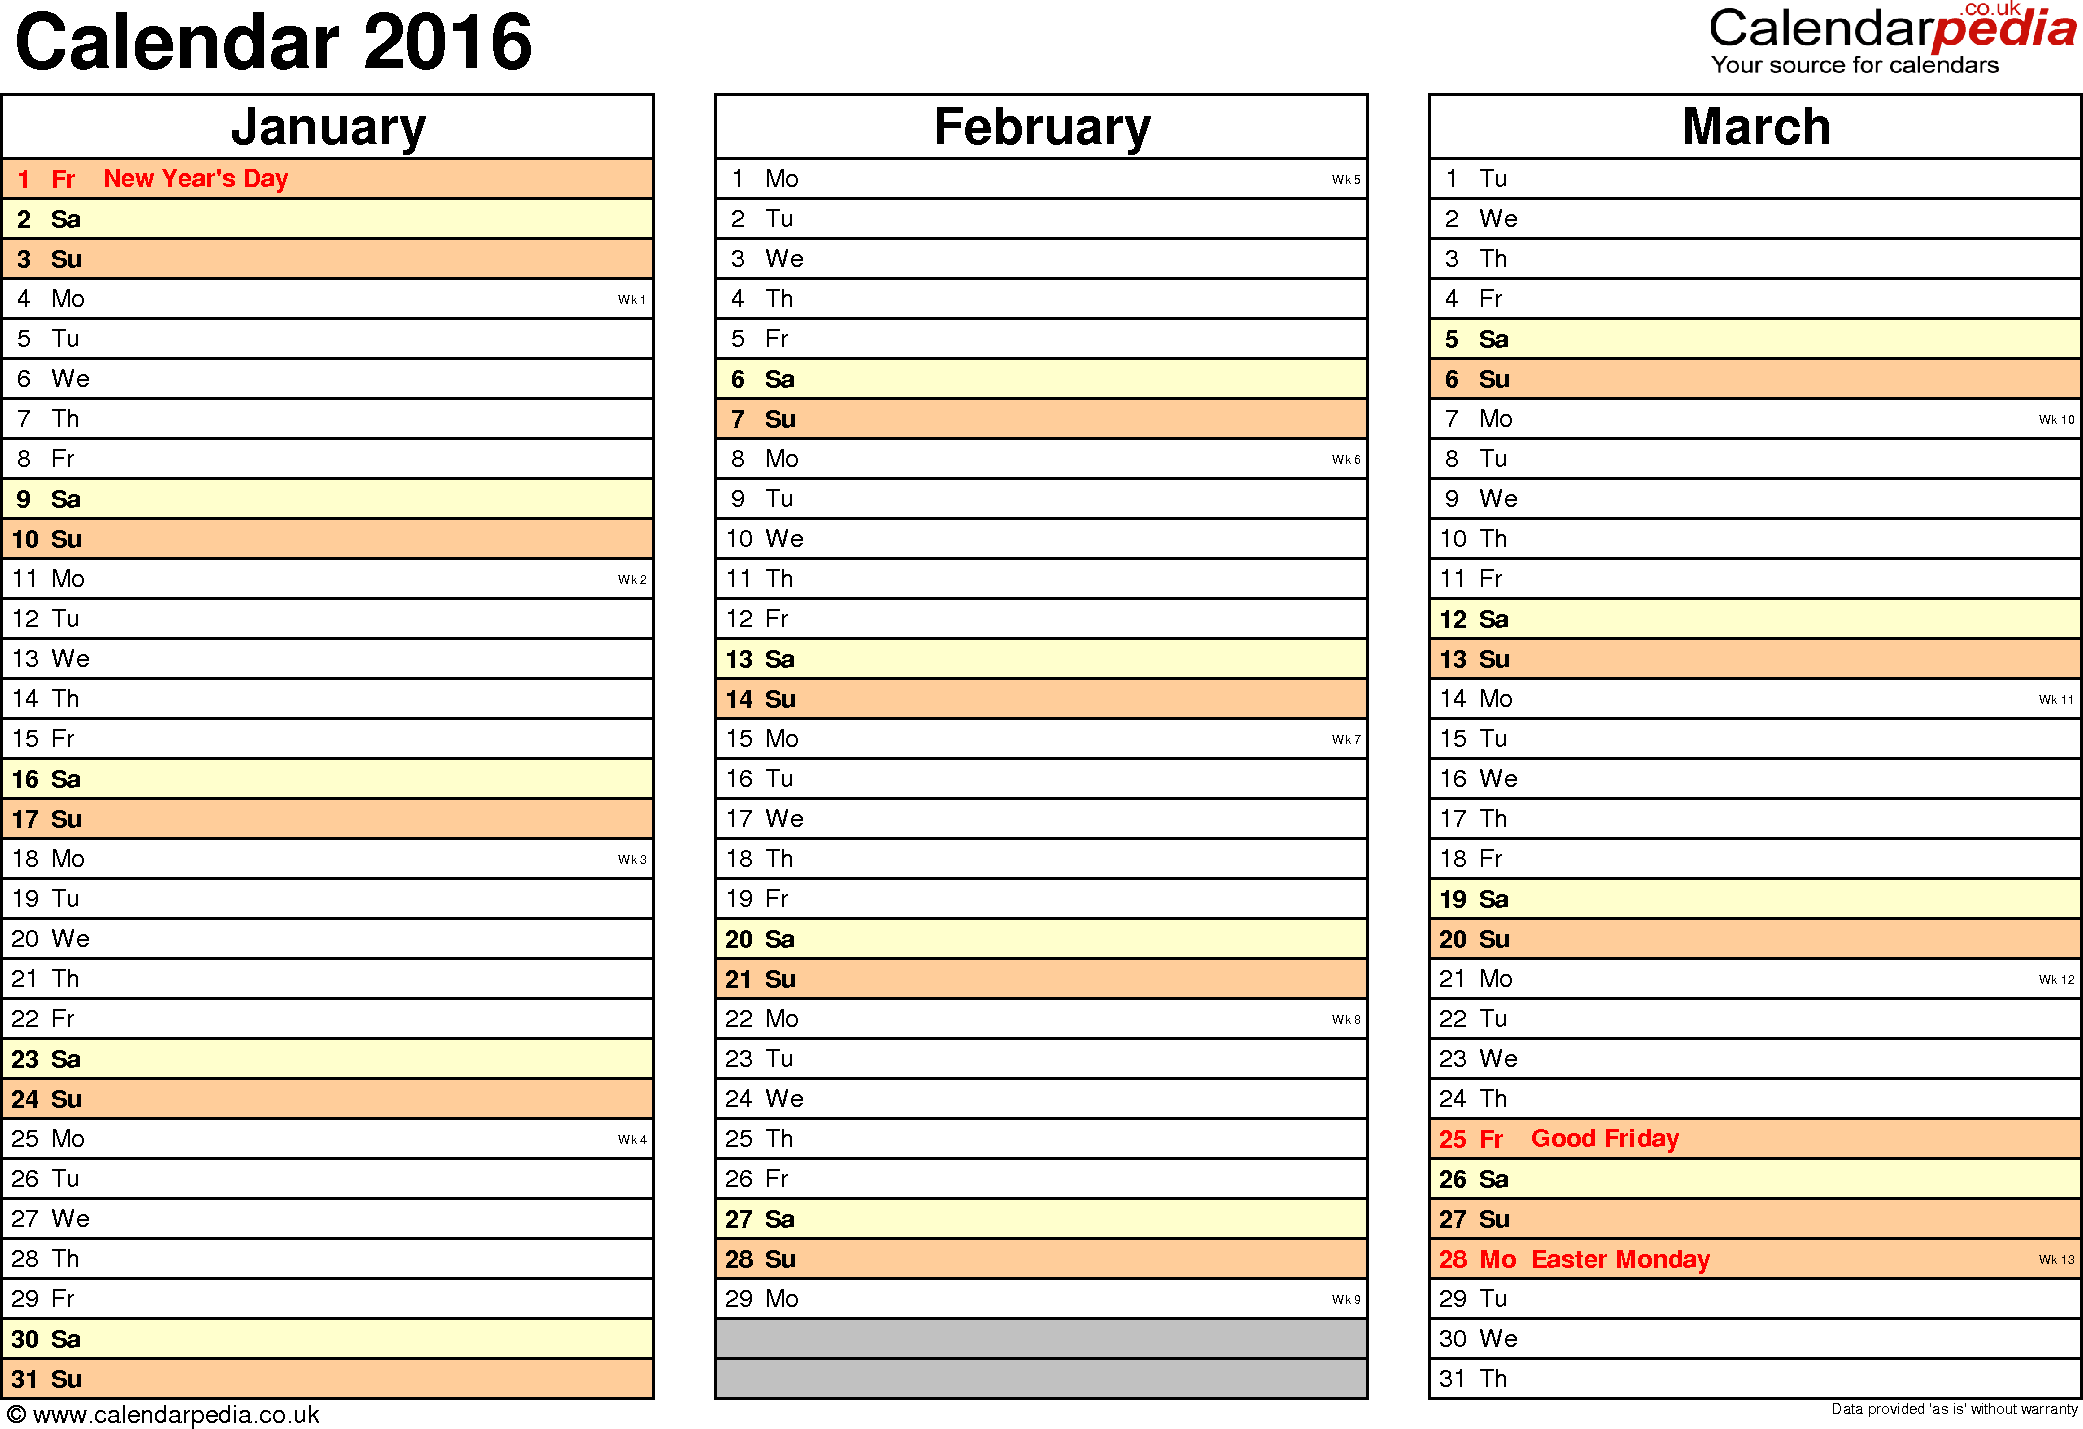 calendar 2016 uk 16 printable word templates template 5 yearly calendar 2016 as word template landscape orientation 4 pages